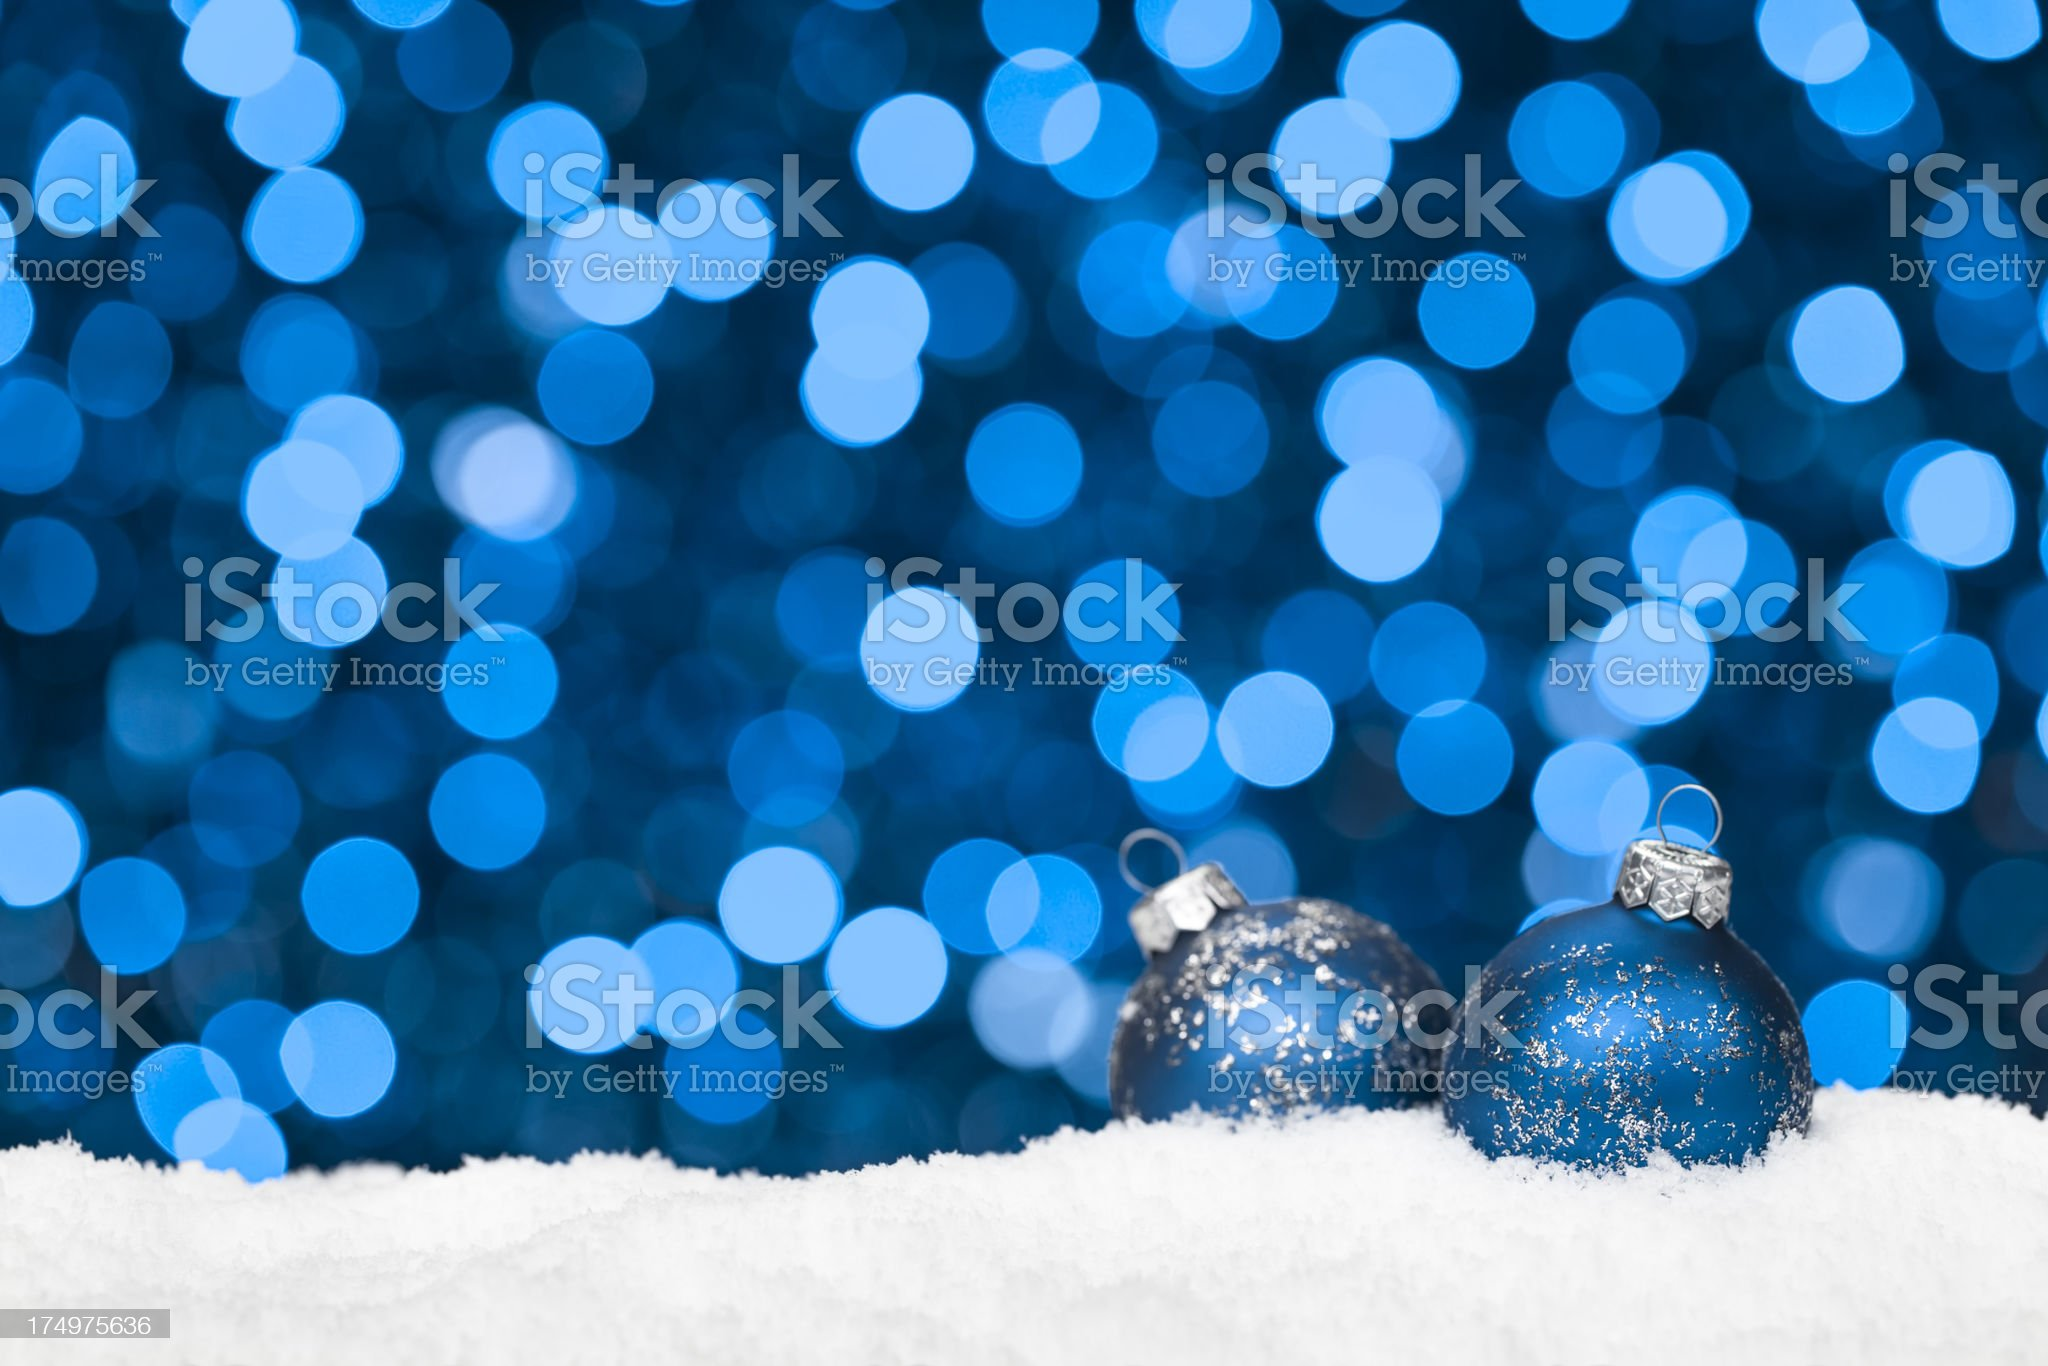 Blue Baubles on Snow royalty-free stock photo